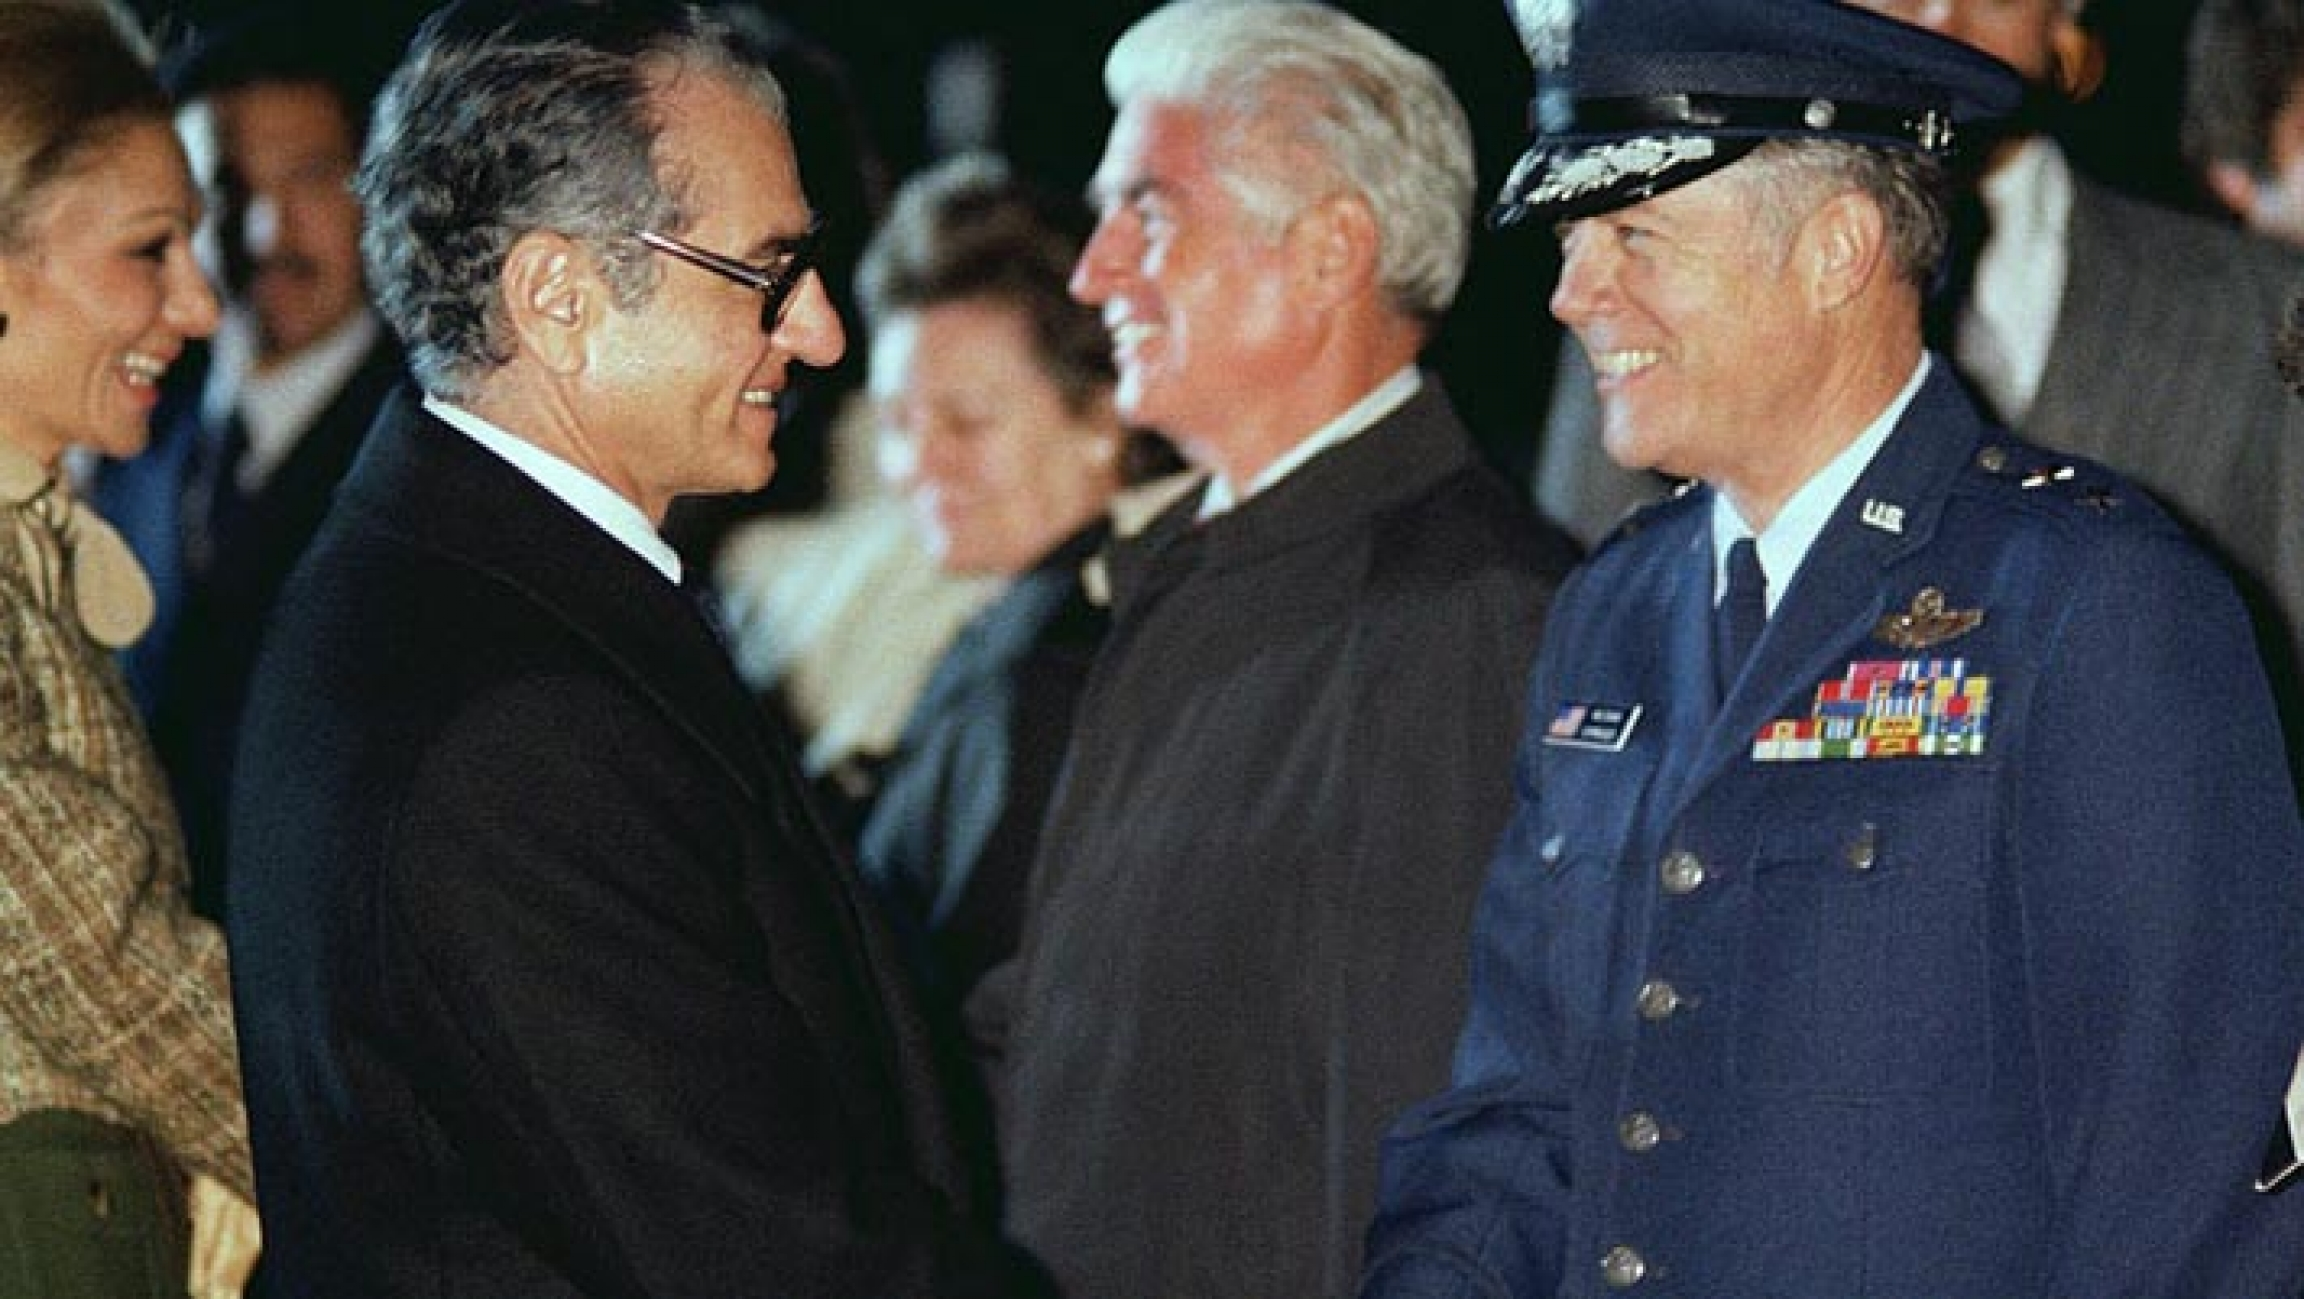 Mohammed Reza Pahlavi, Shah of Iran, shakes hands with a US Air Force general officer prior to his departure from the United States.